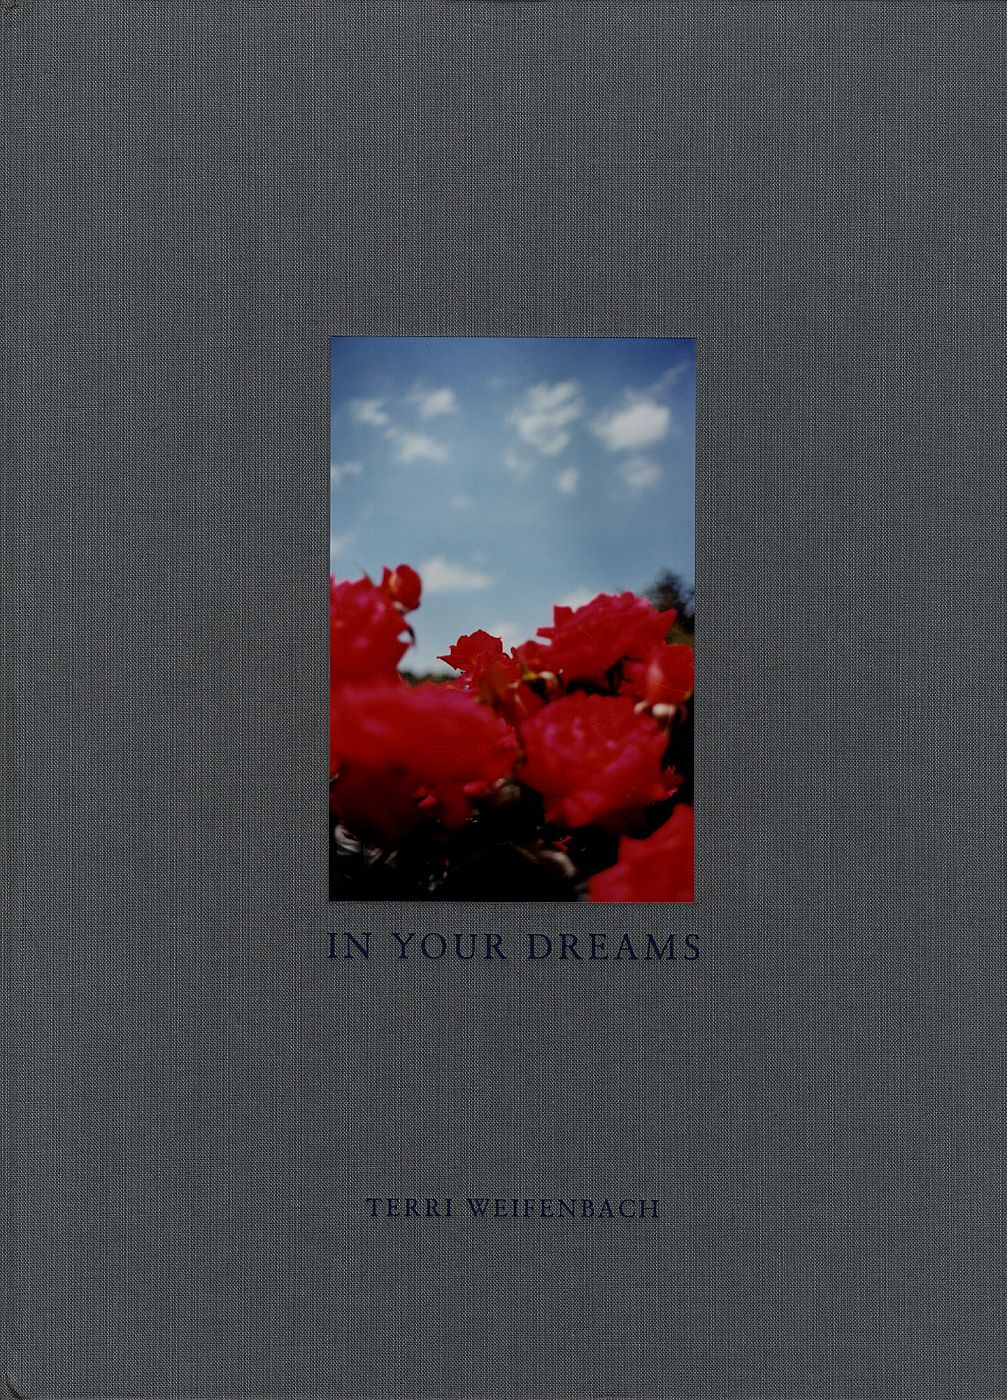 Terri Weifenbach: In Your Dreams, Limited Edition (with Tipped-In Type-C Print) [SIGNED]